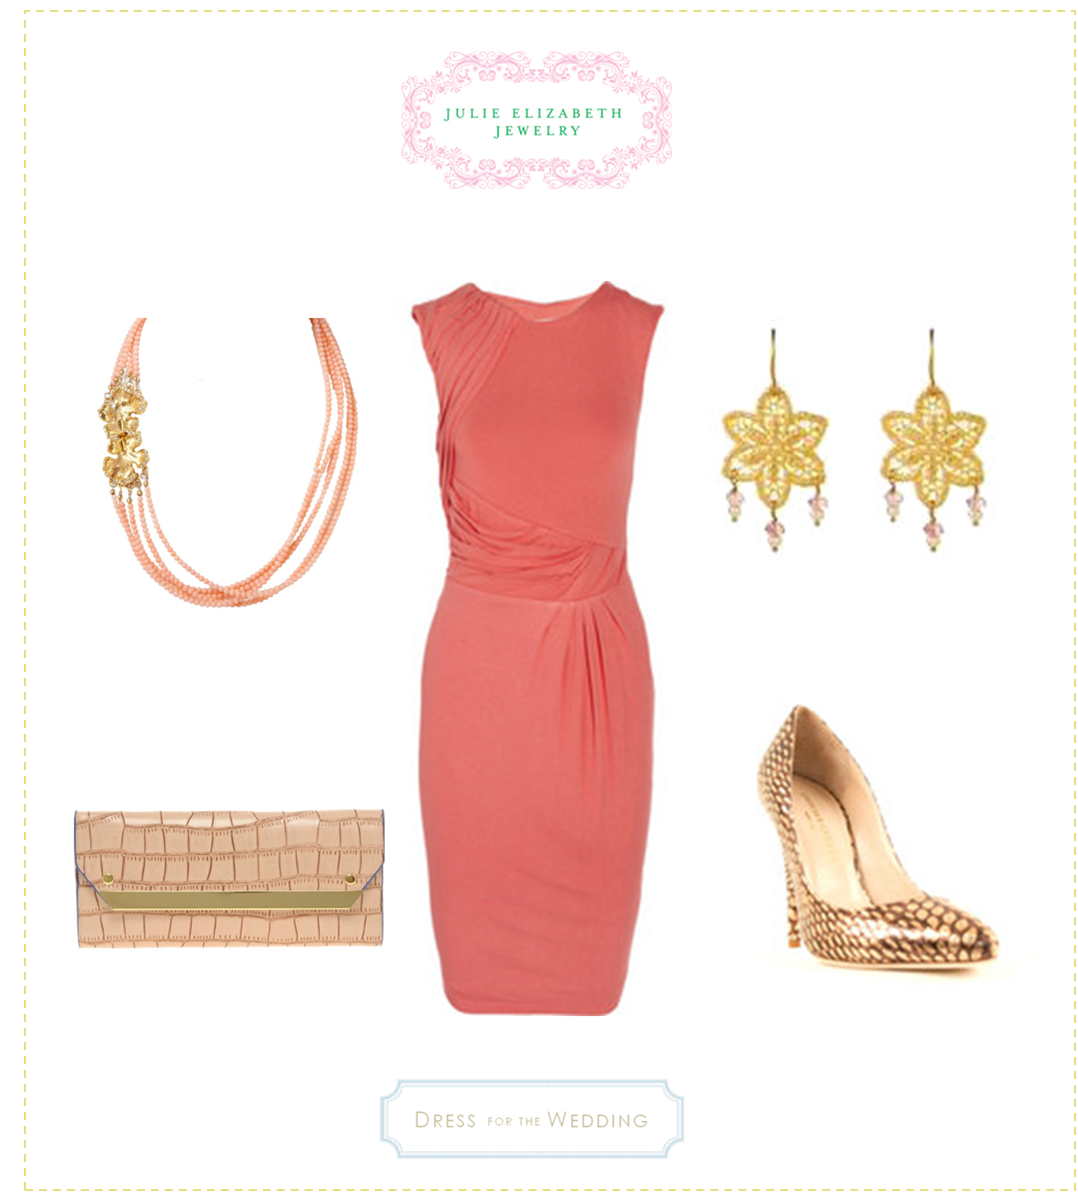 Julie elizabeth jewelry pink dresses weddings and clothes for Dress to wear as a guest to a wedding